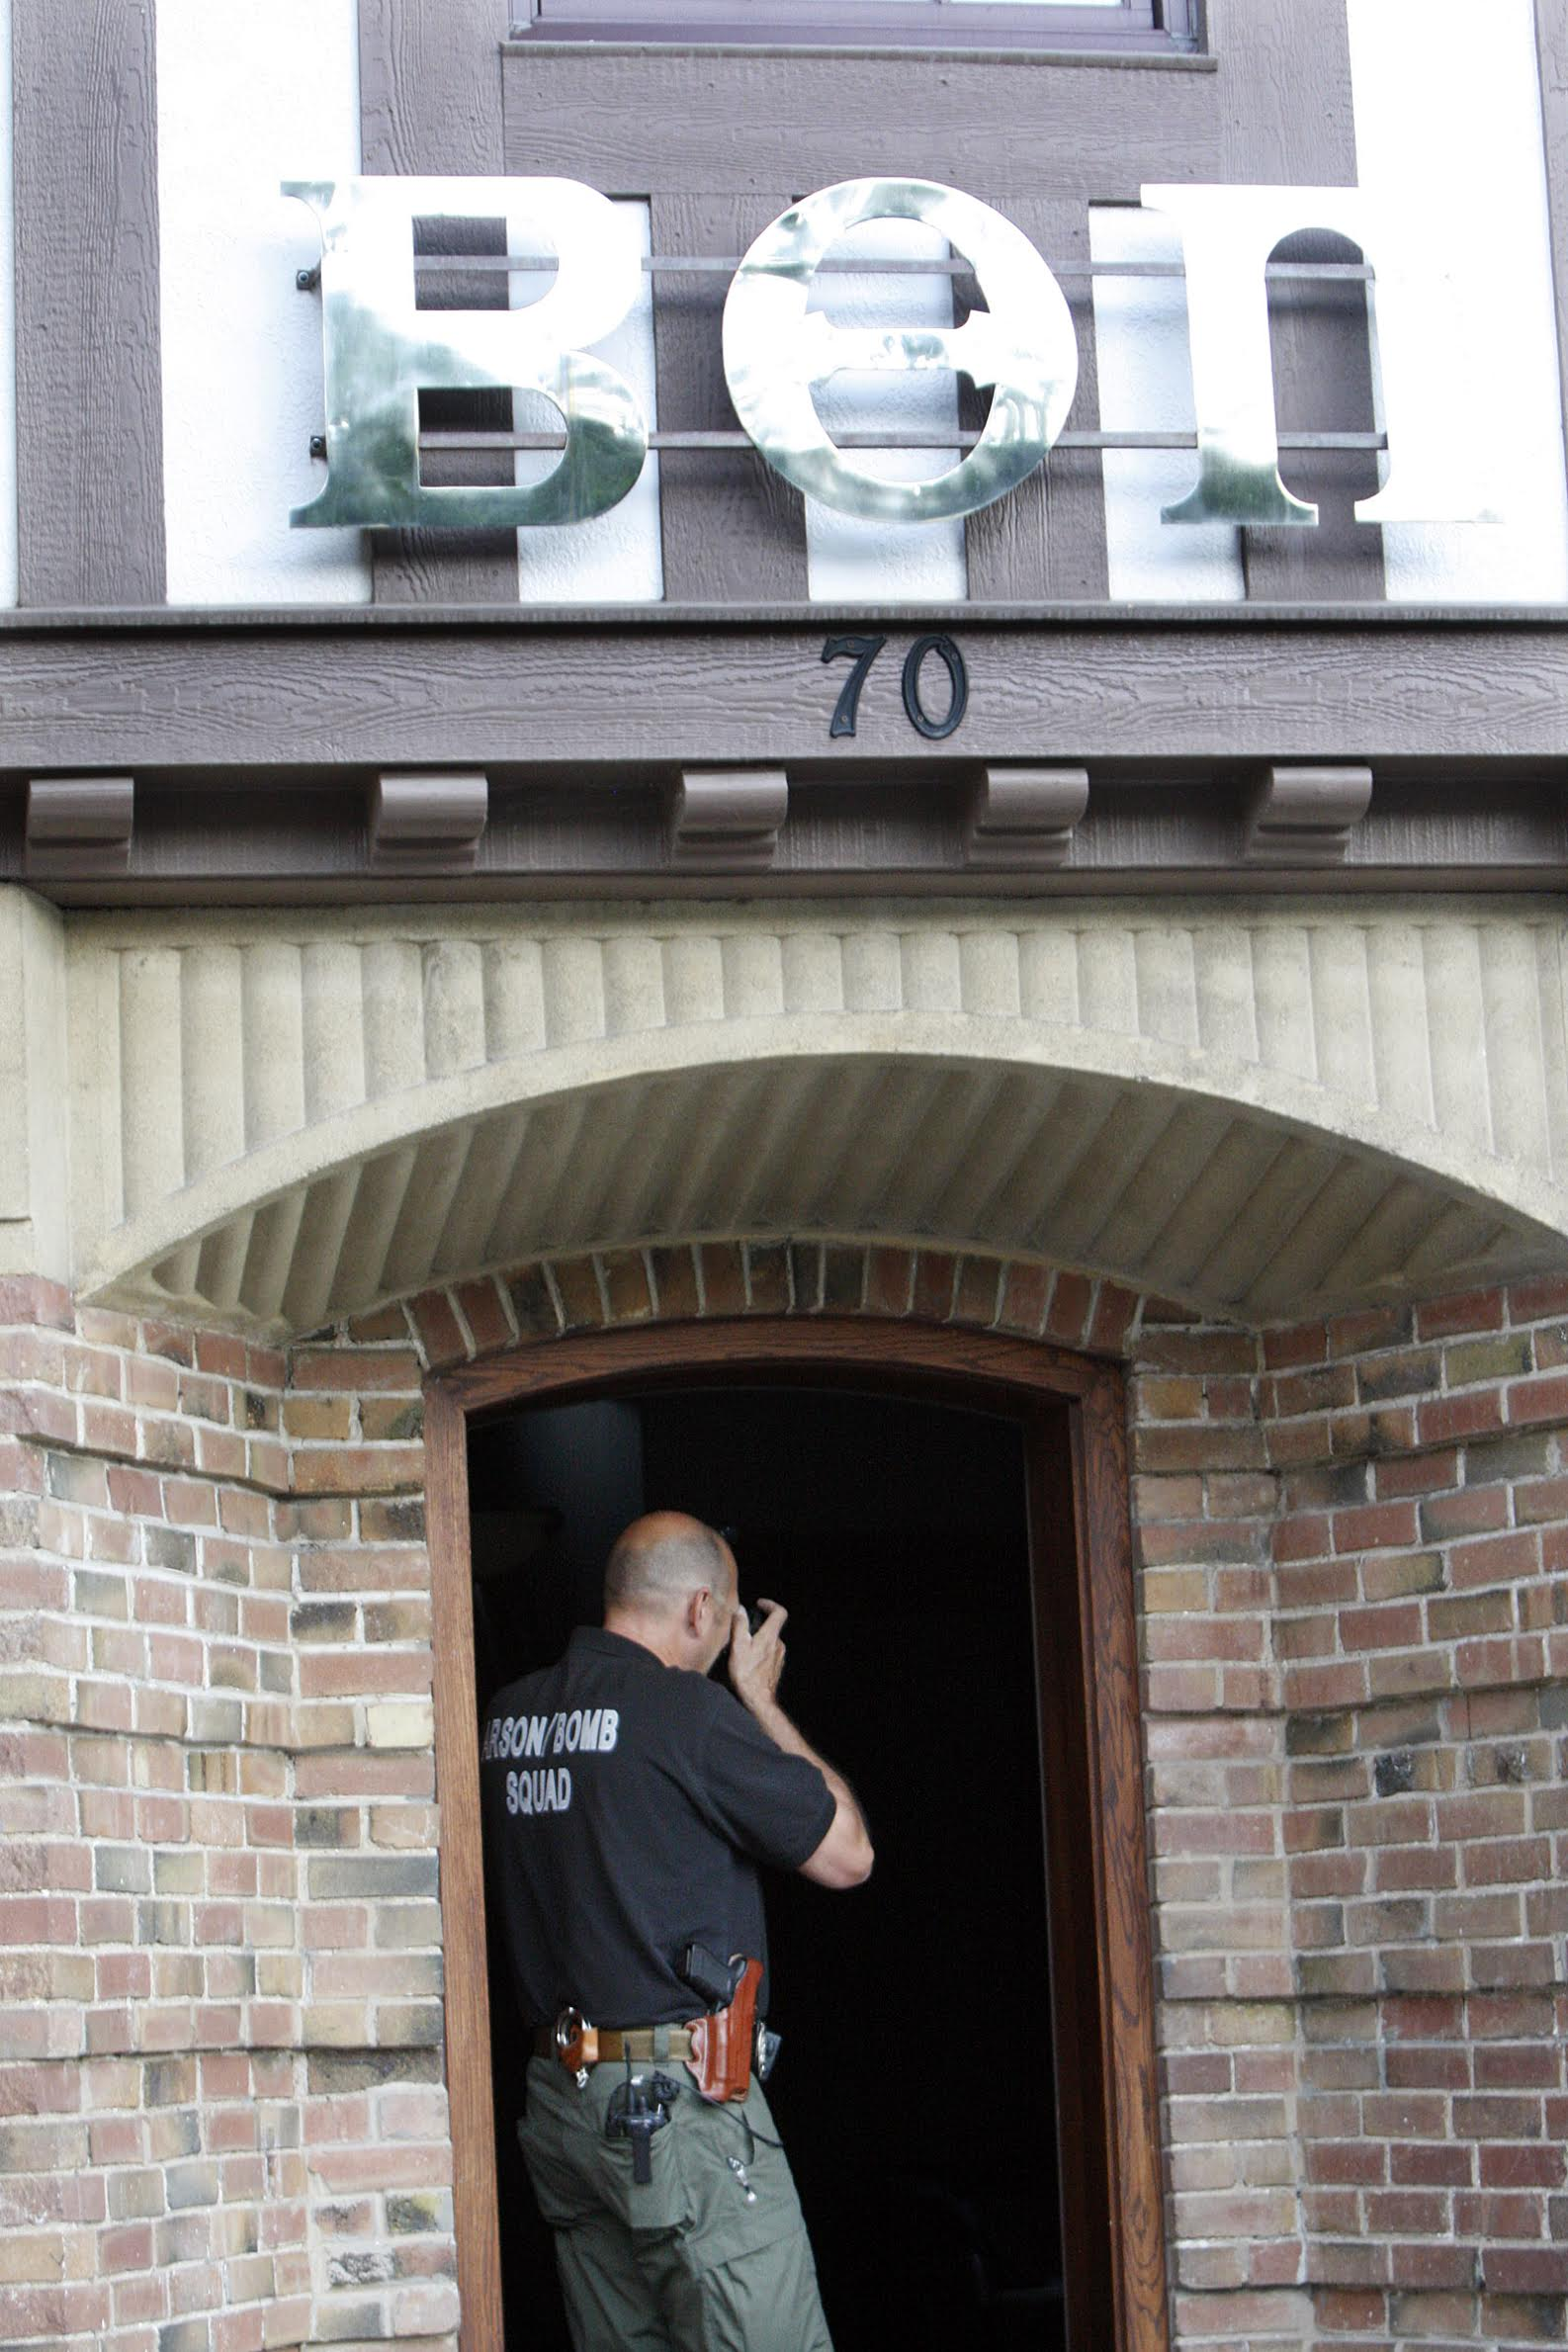 An SLCFD arson investigator takes photos inside the Beta Theta Pi house at the University of Utah, Friday, July 3, 2015. Two fraternity houses were damaged in fires early Friday morning.